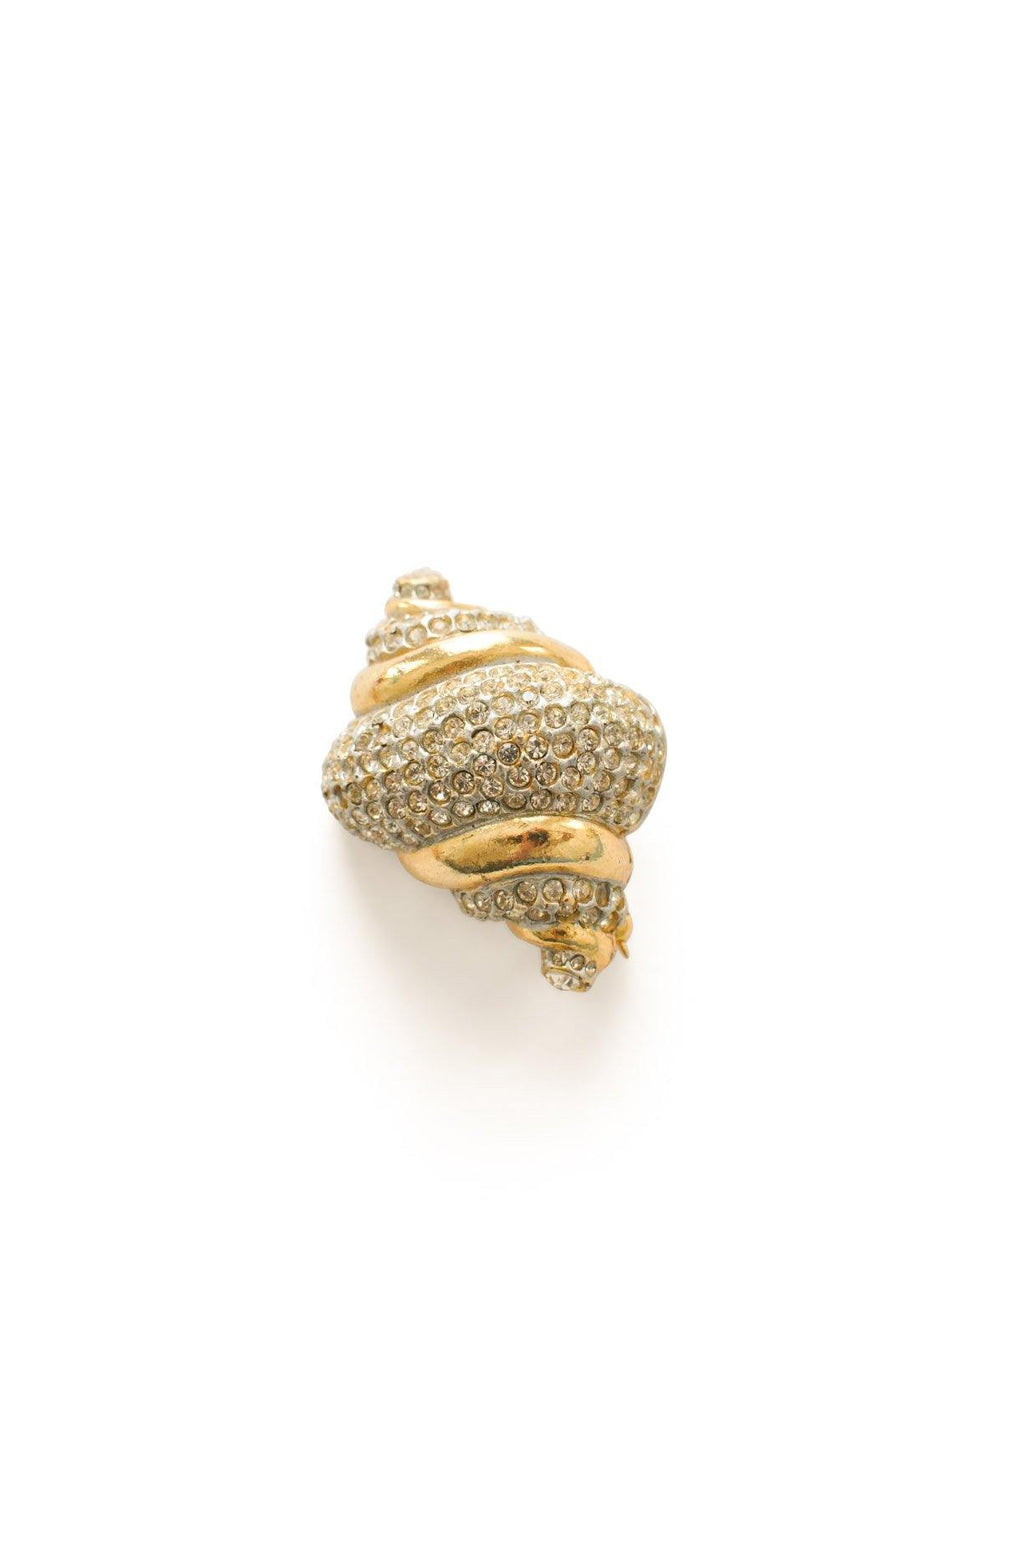 Gold and Rhinestone Seashell Brooch